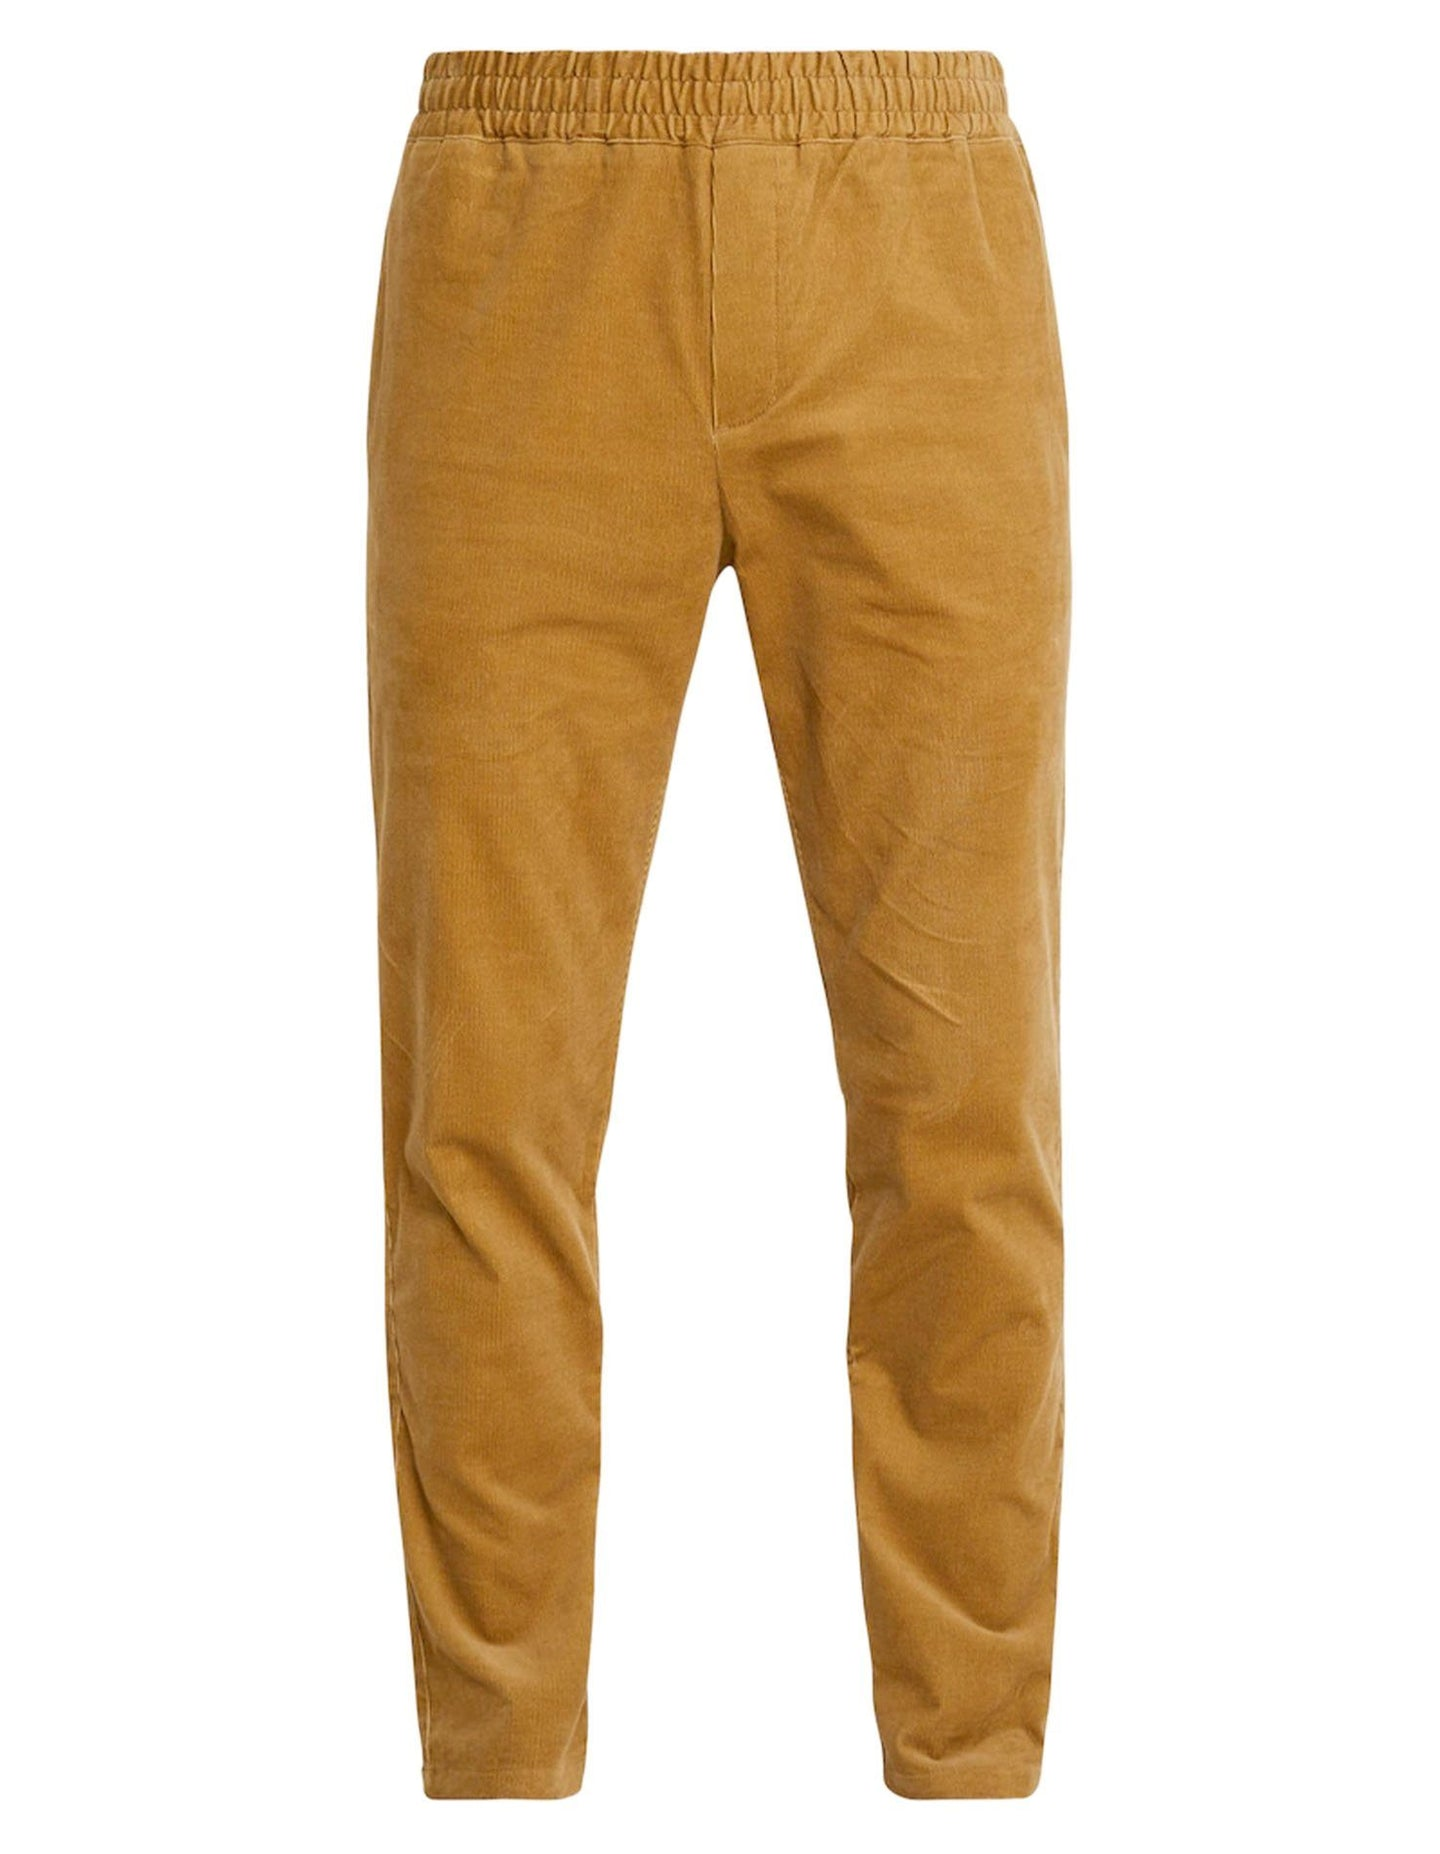 SMITHY COTTON PANTS